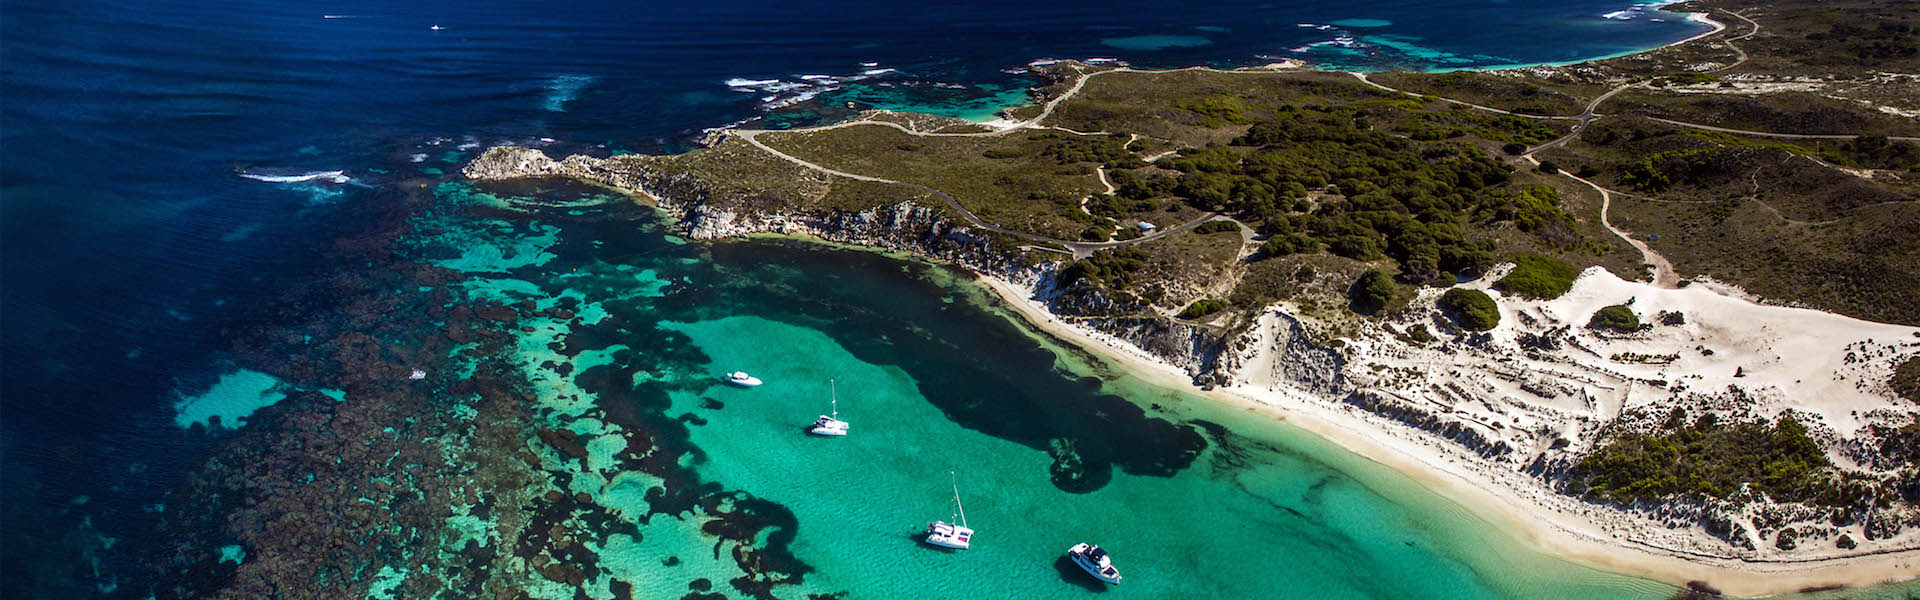 Aerial view over Rottnest Island